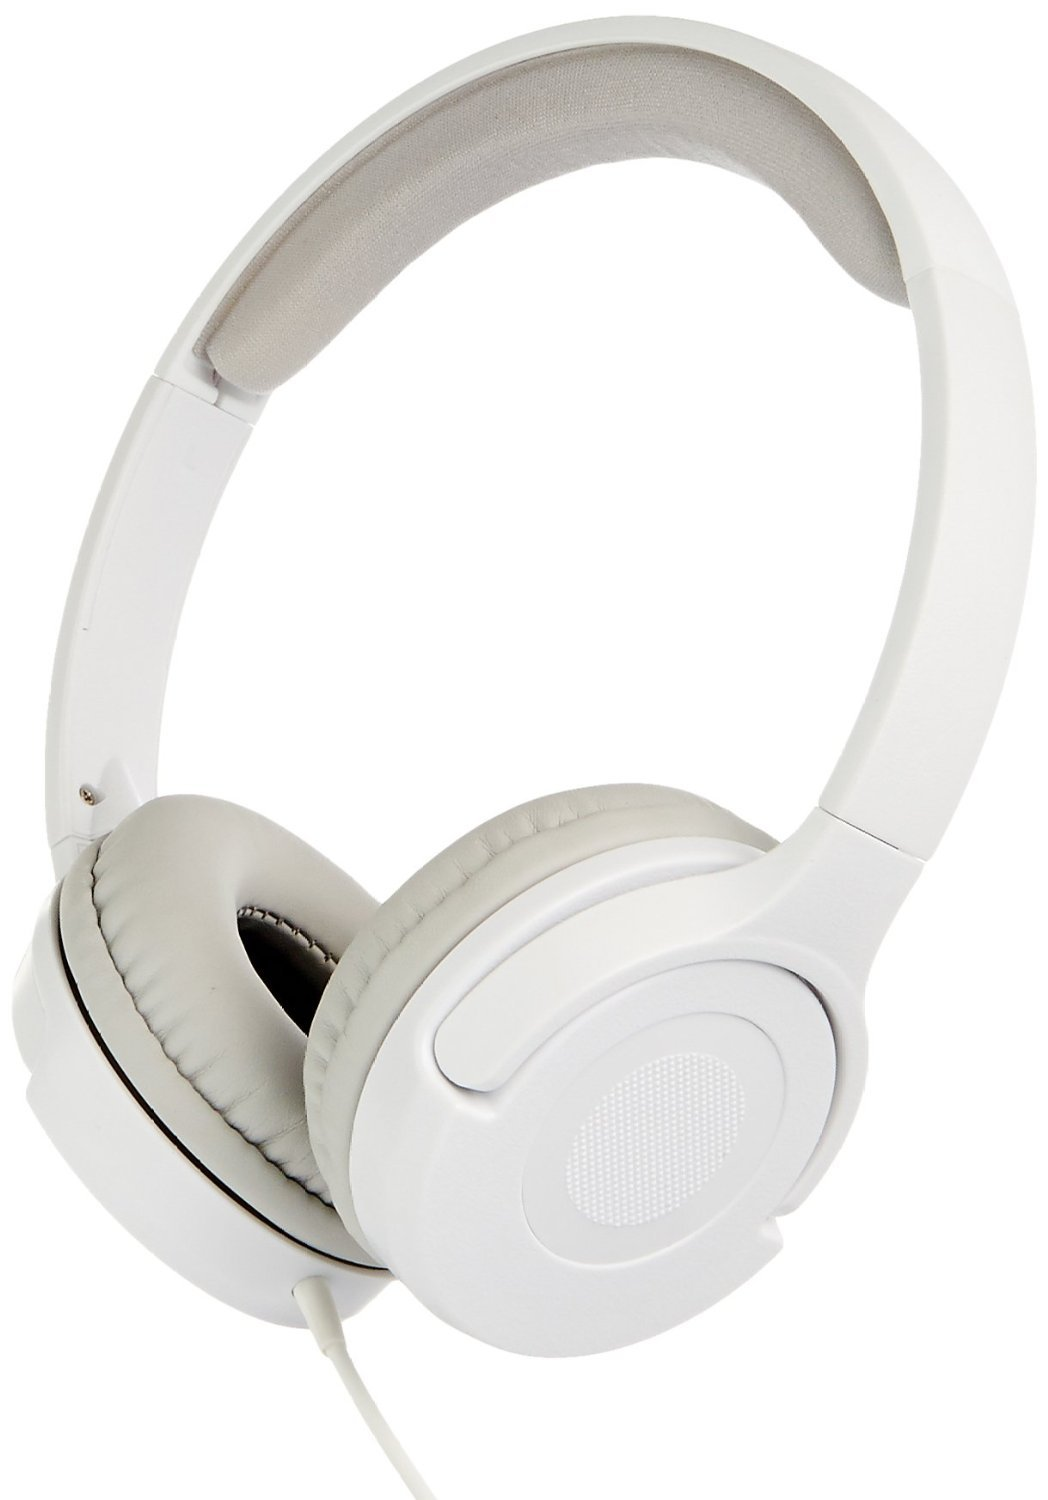 White AmazonBasics Best Value Headphones